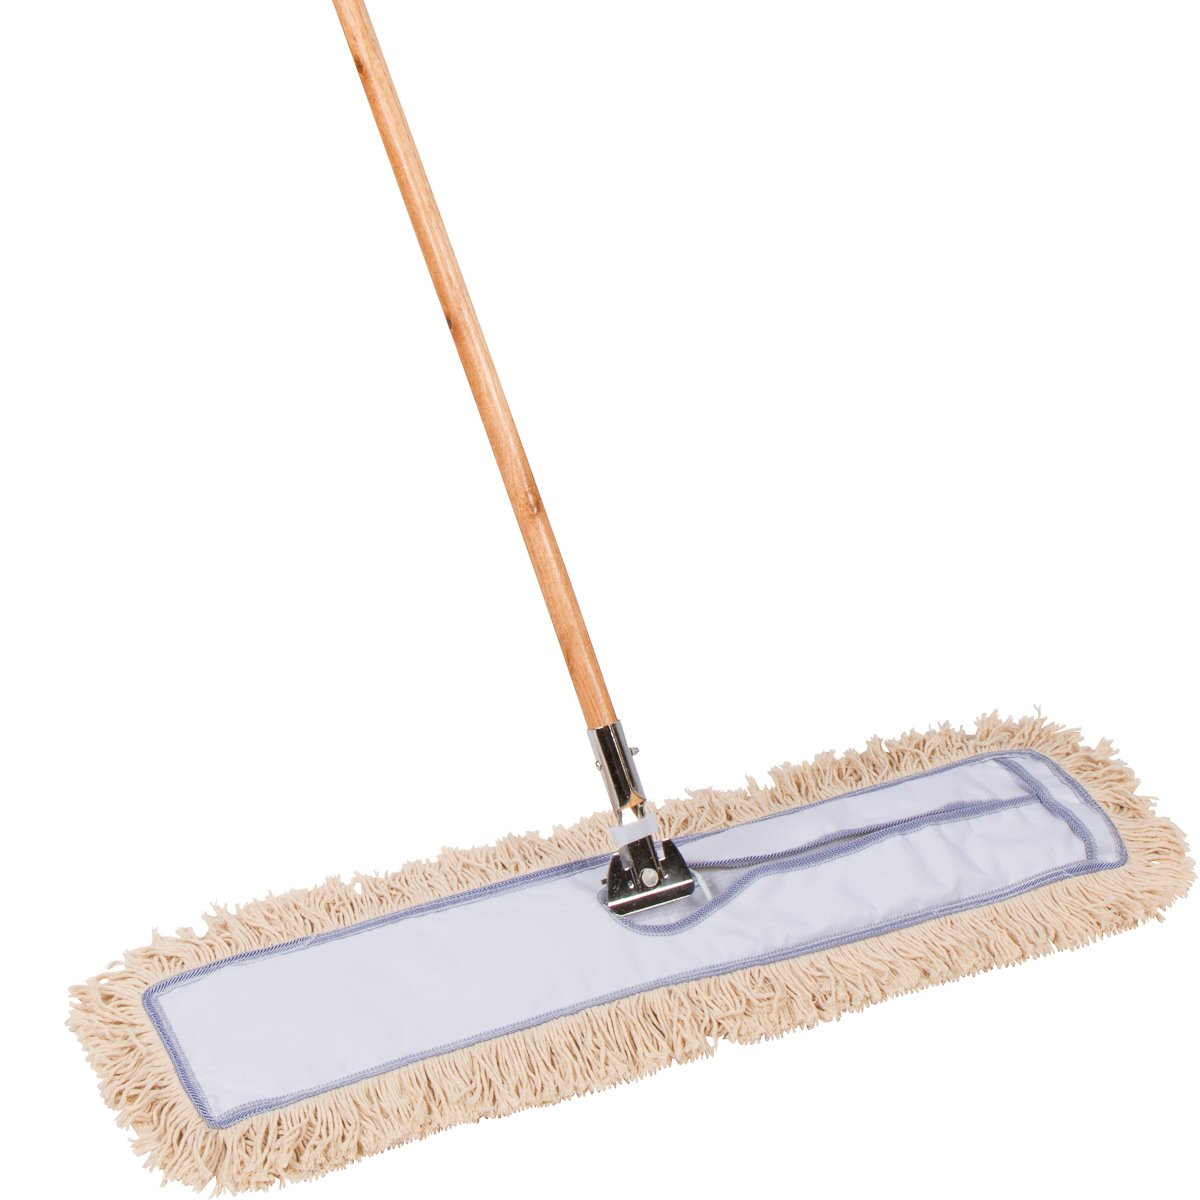 AMR Market 30 inch Commercial Strength Cotton Dust Mop with Solid Wood Handle and Metal Frame. 30'' X 5'' Wide Mop Head with Cut Ends - Hardwood Floor Broom